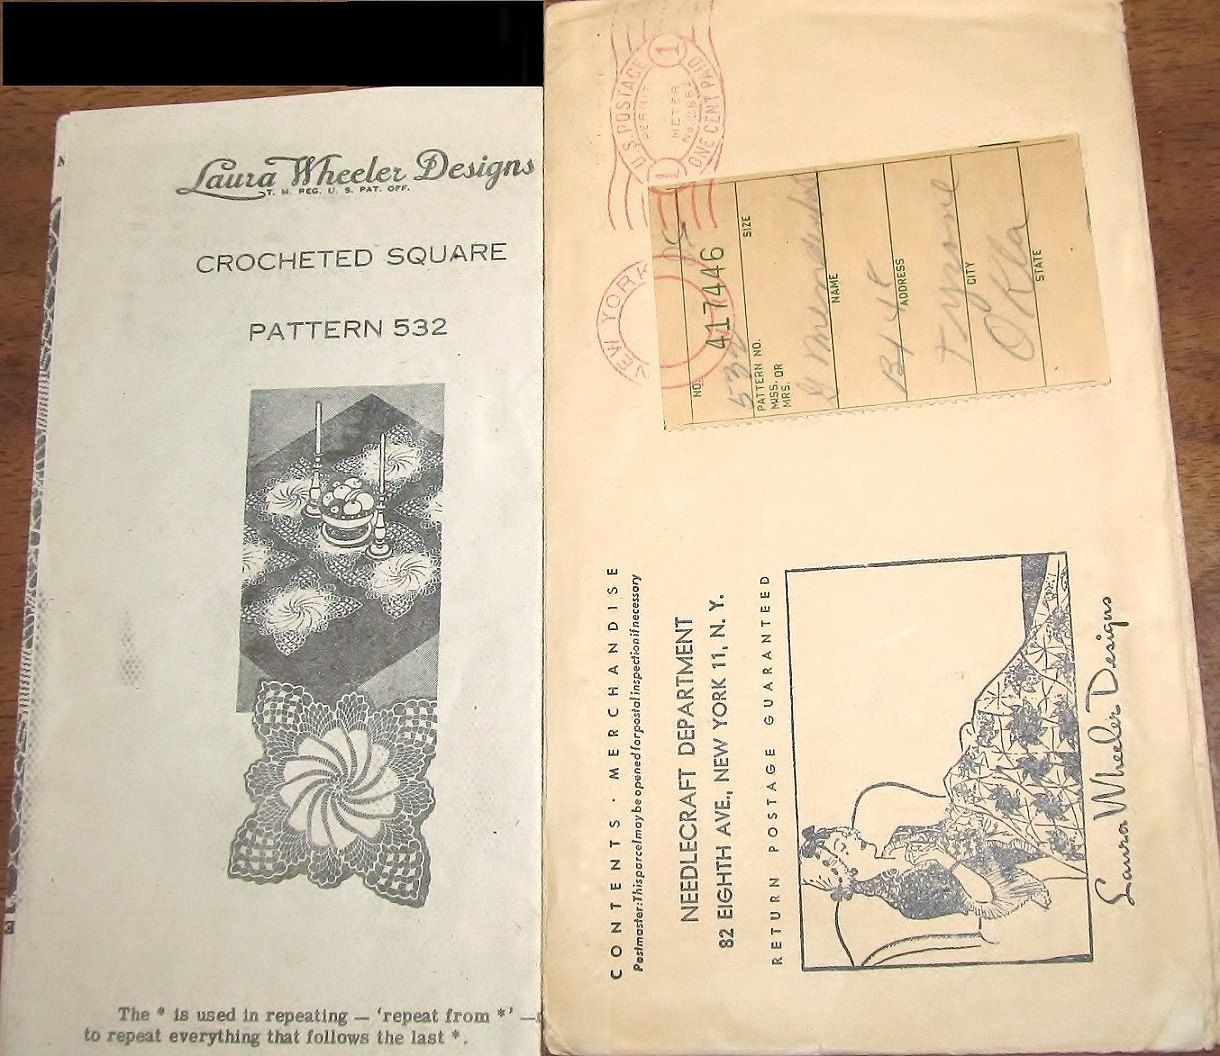 Vintage 1940s laura wheeler mail order crochet pattern pinwheel vintage 1940s laura wheeler mail order crochet pattern pinwheel swirl doily thread lace square doilies bankloansurffo Gallery